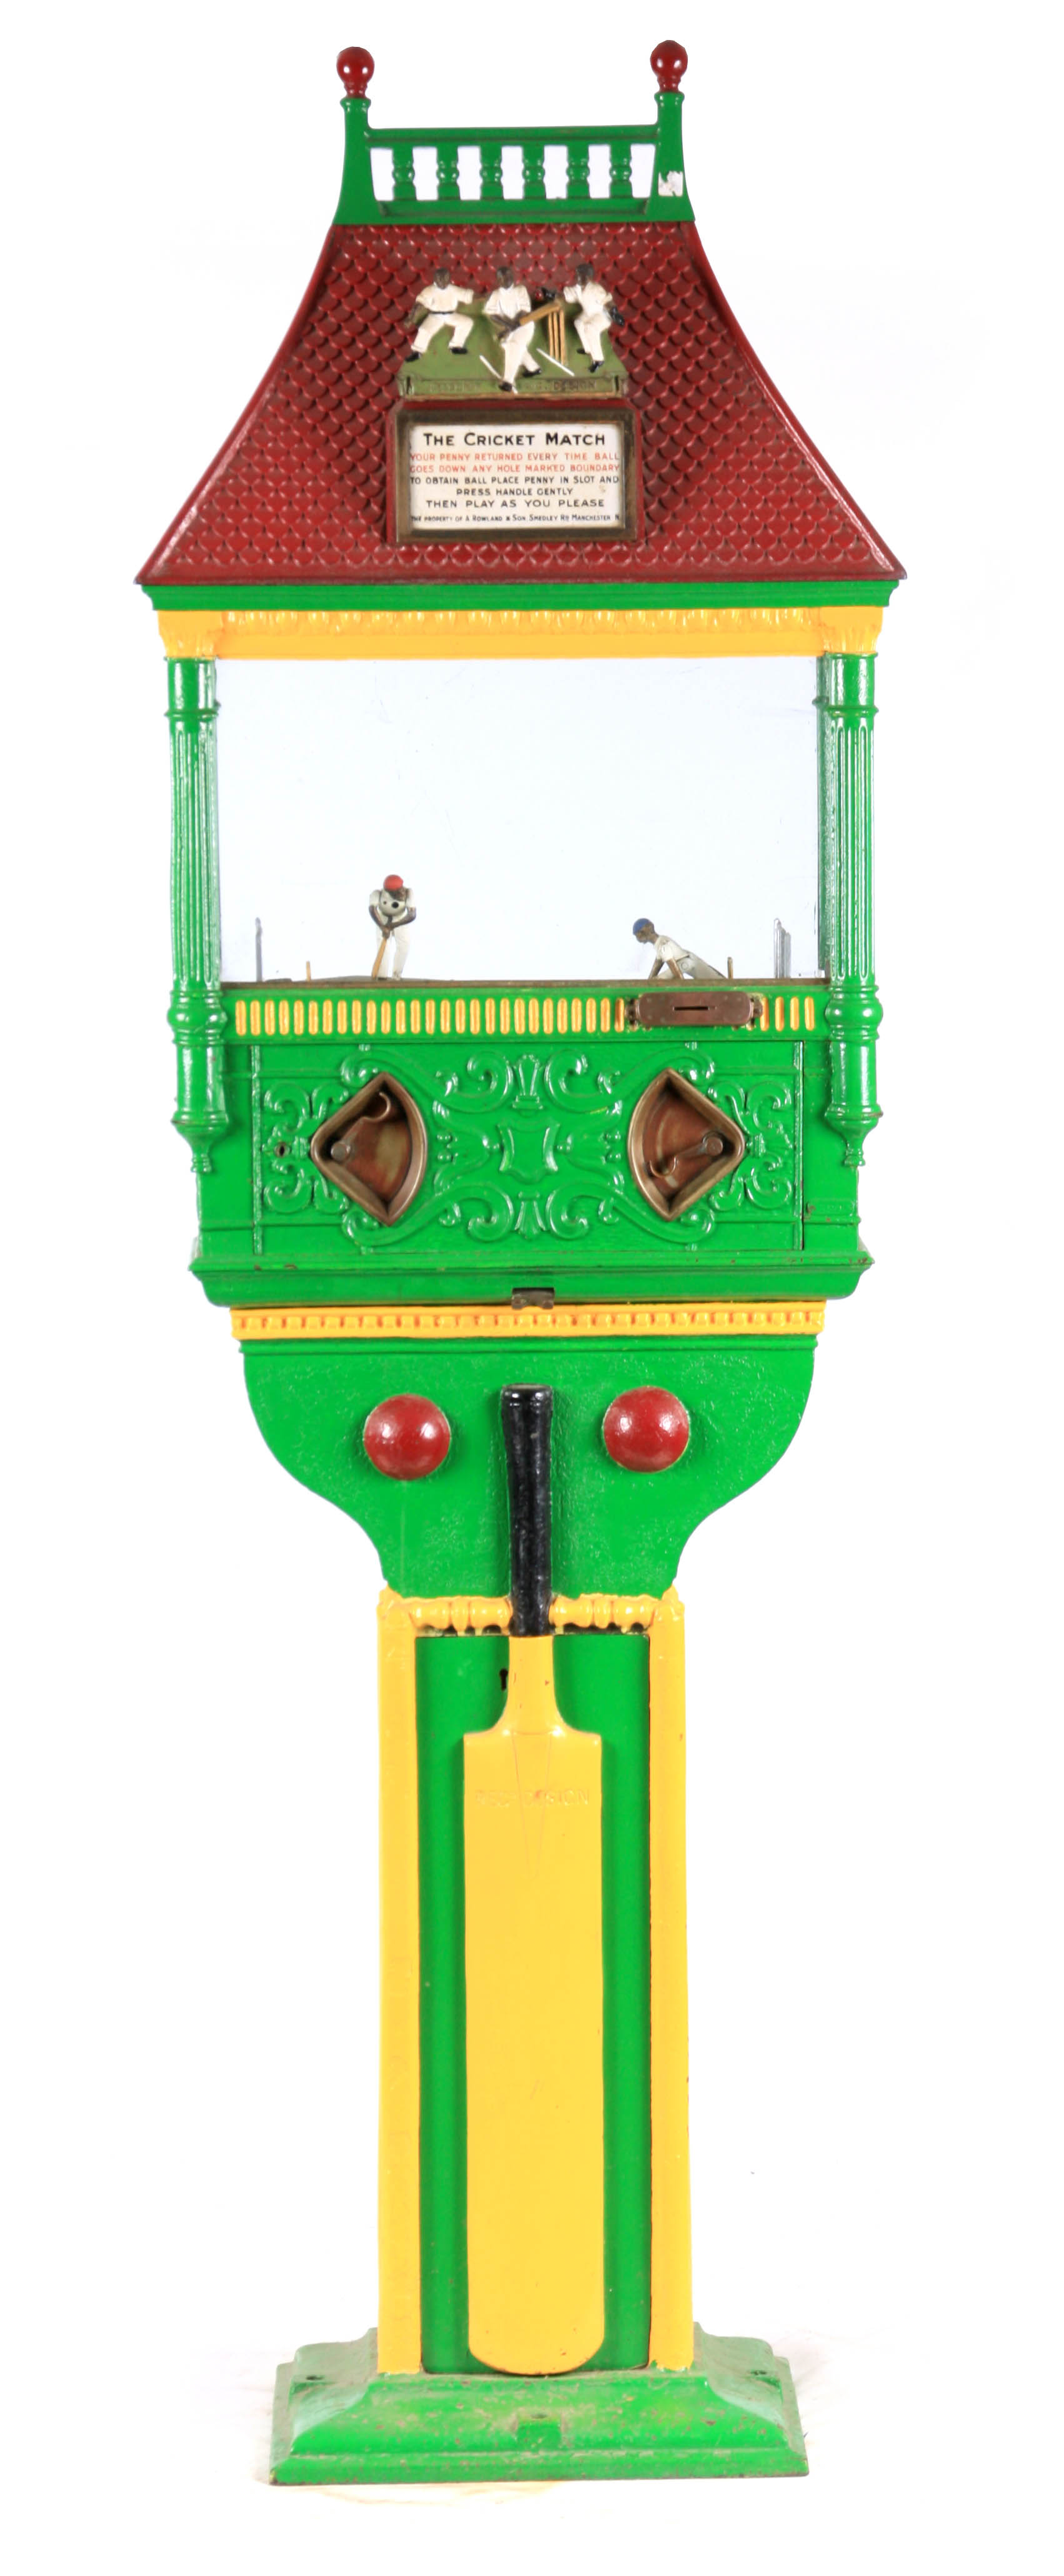 A LATE 19TH CENTURY PAINTED CAST IRON 'PENNY IN THE SLOT' CRICKET ARCADE MACHINE with tile effect